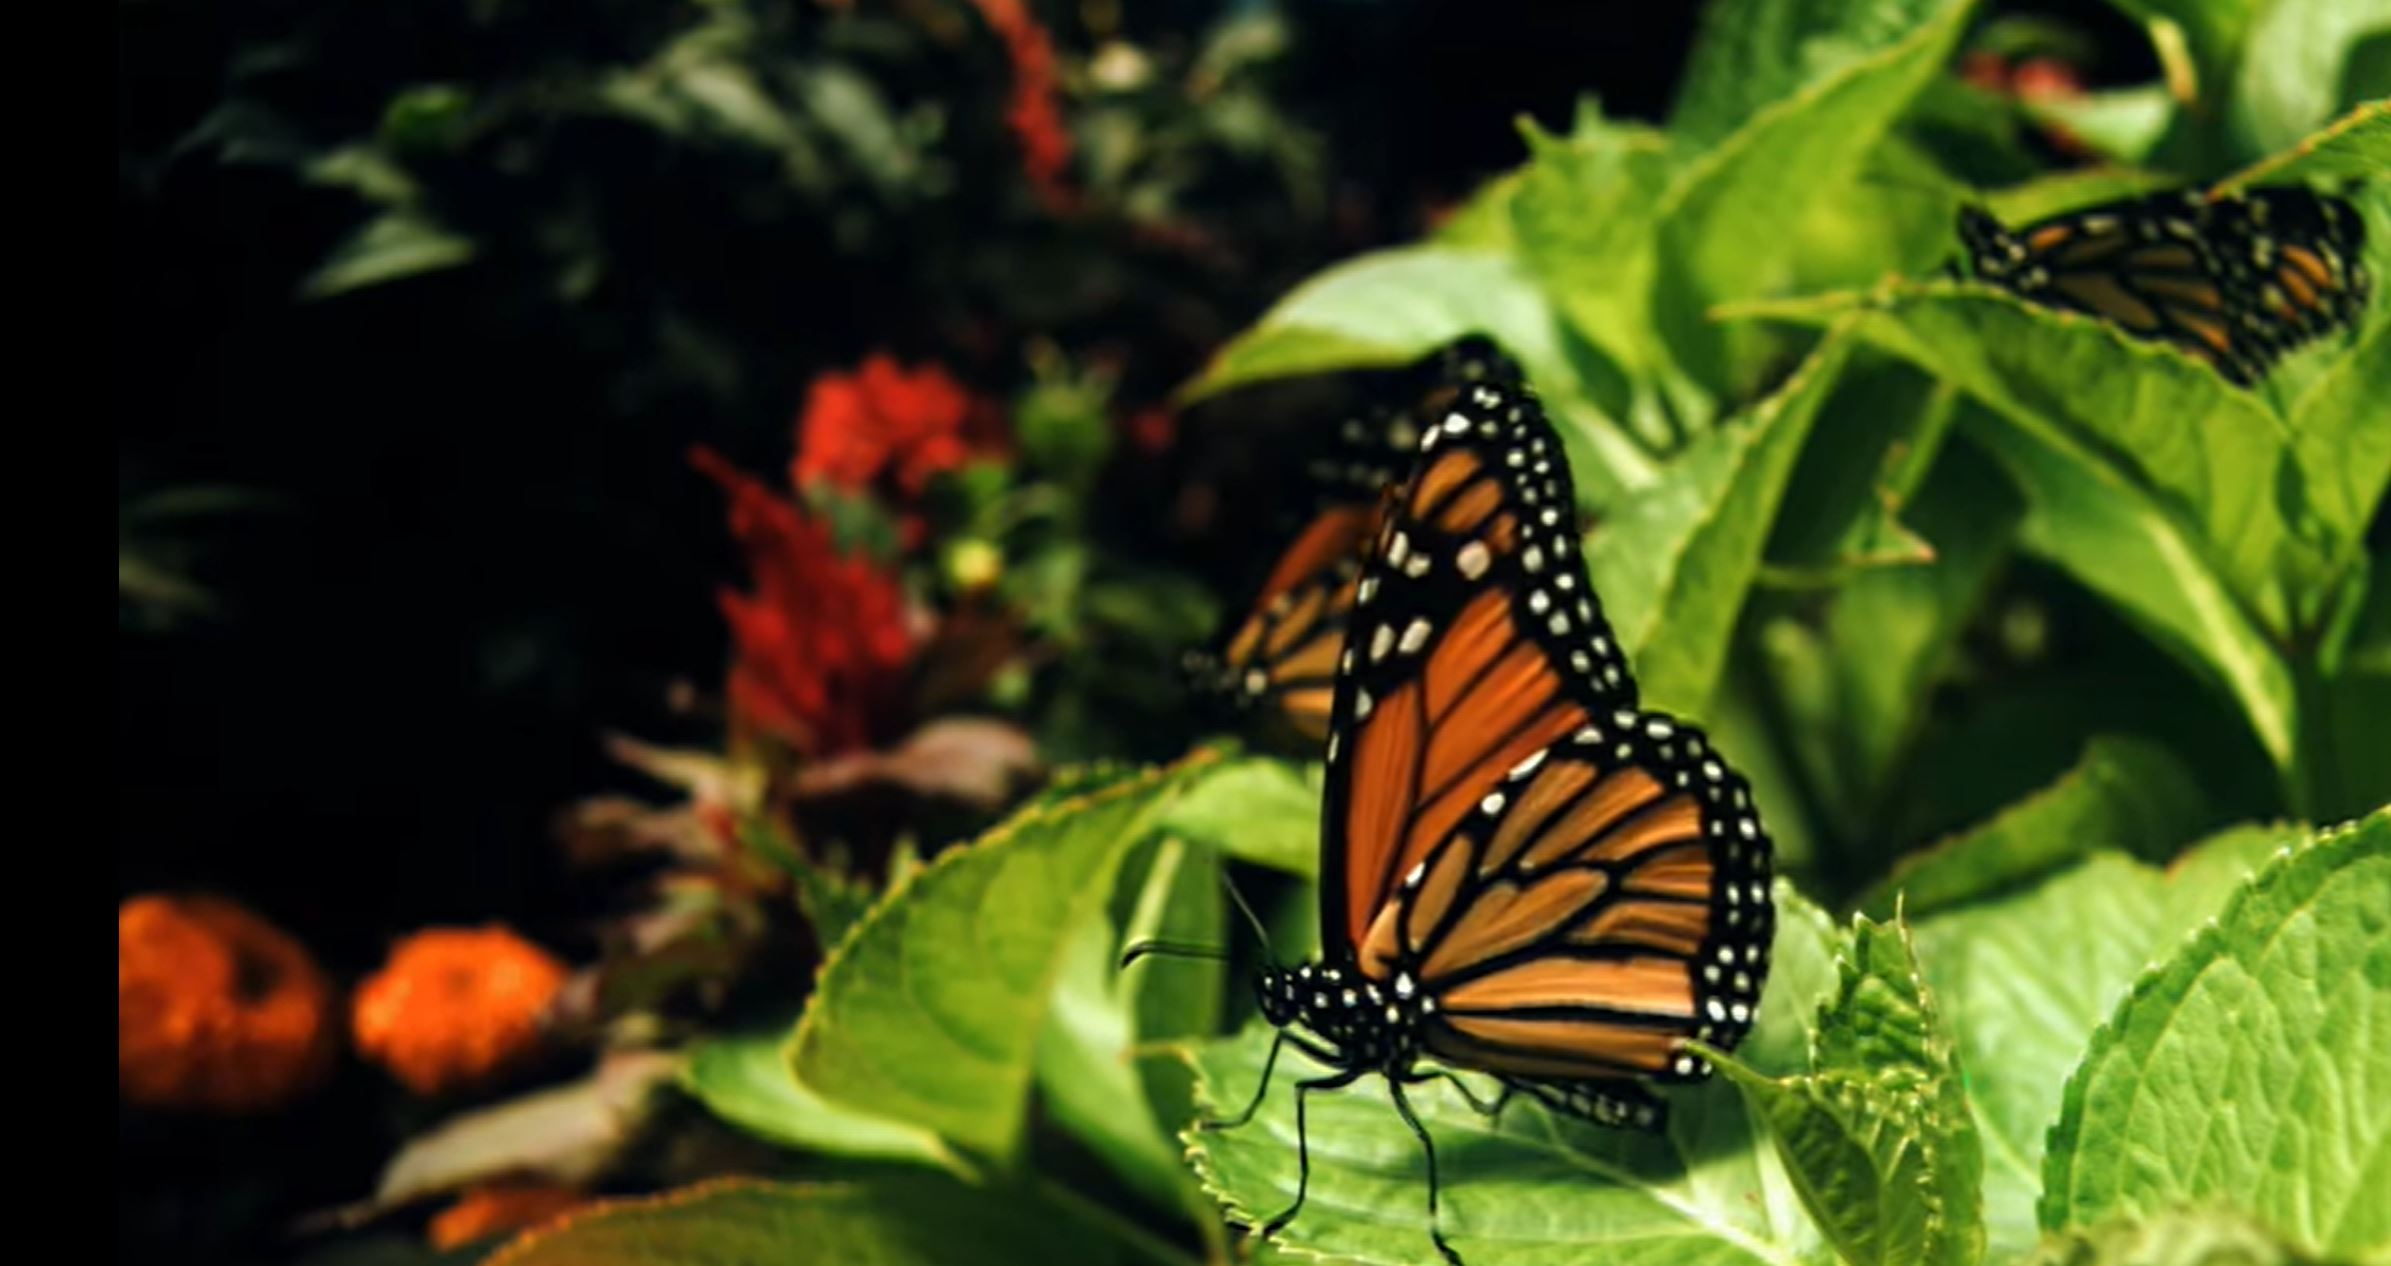 Butterfly release planned for ovarian cancer awareness